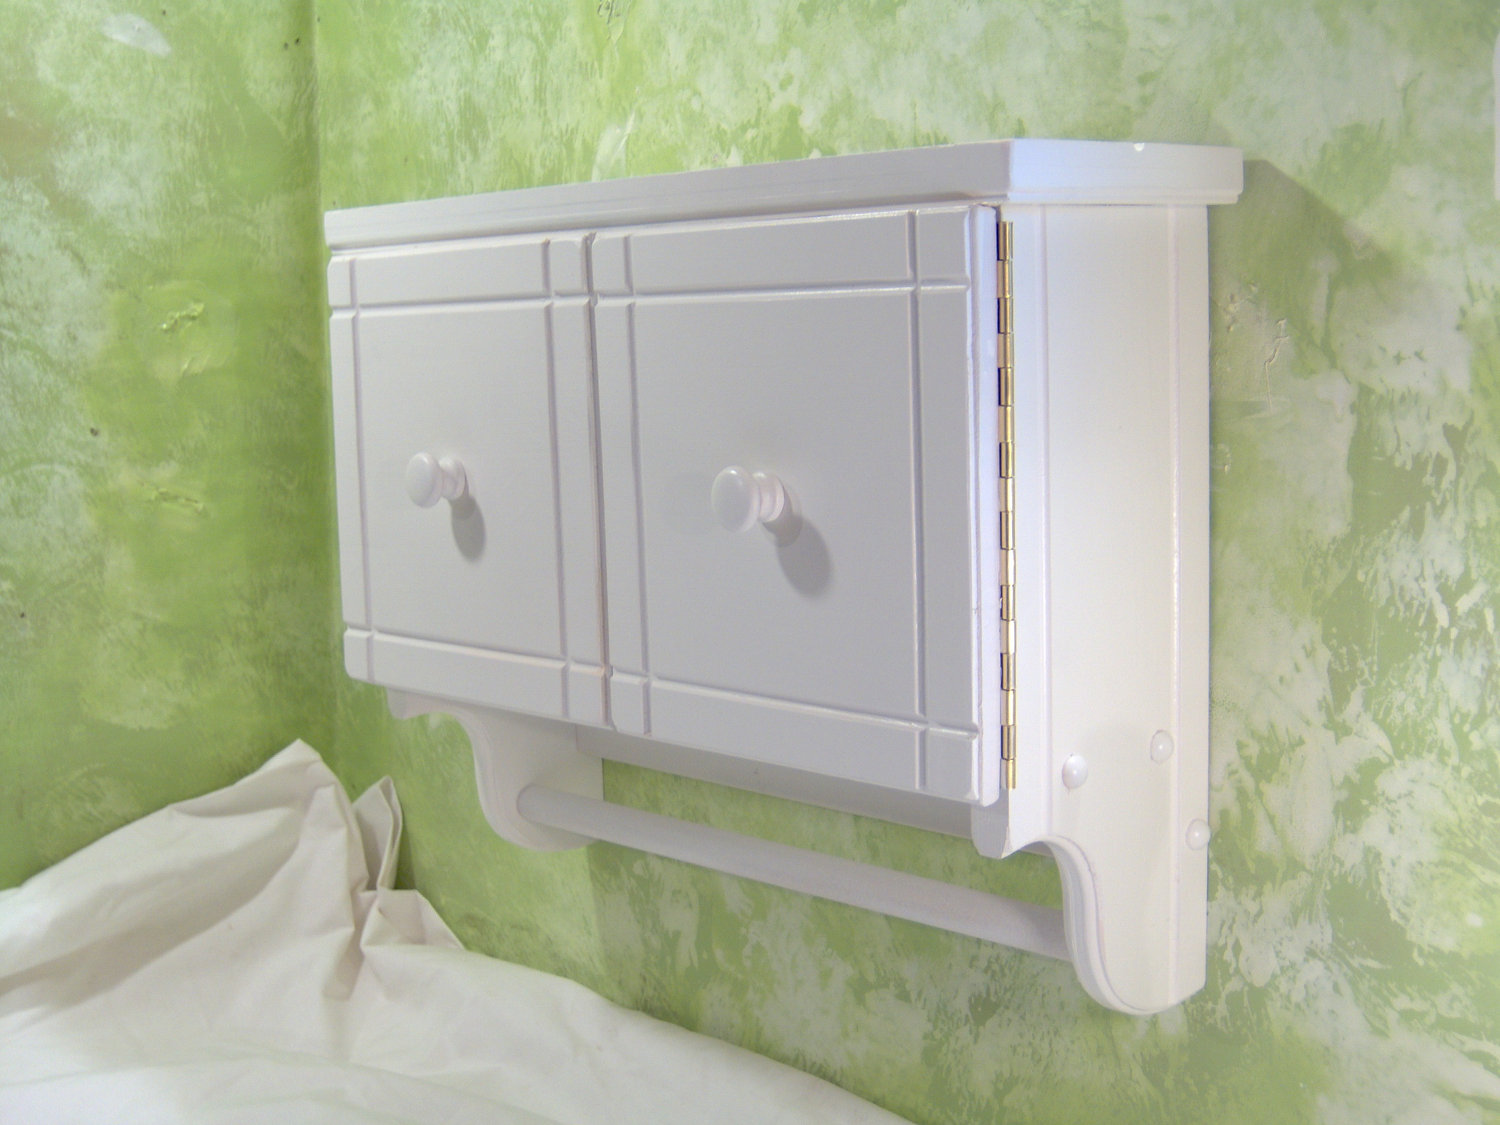 Bathroom Wall Storage Cabinets Wall Mounted Cabinets Buying Guide